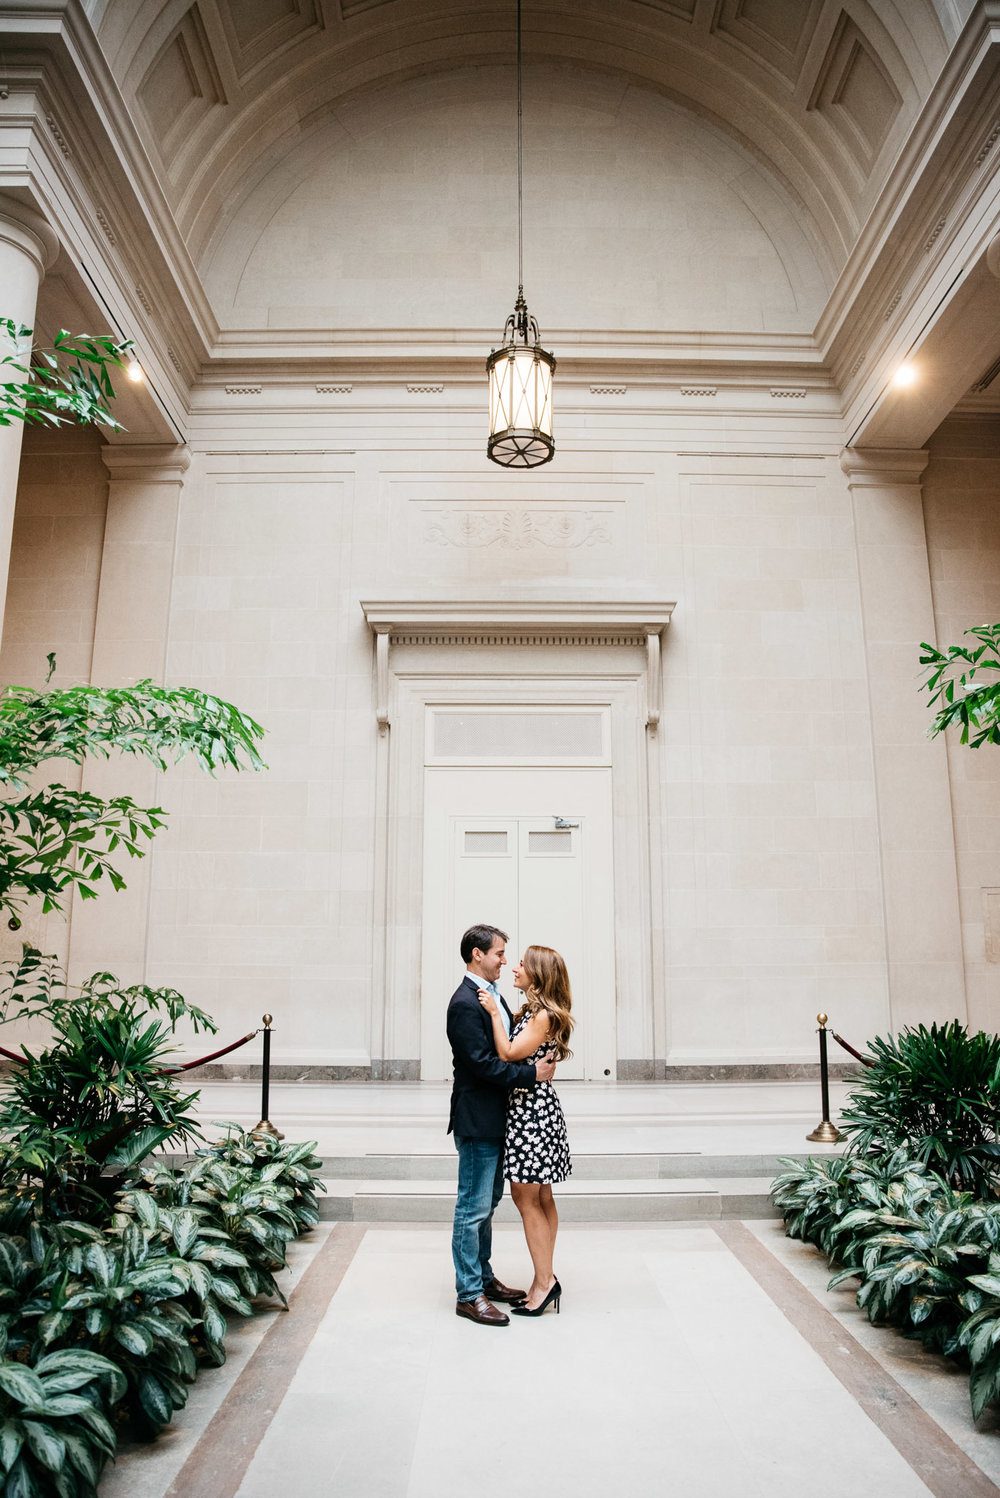 Washington DC National Gallery Engagement Session Mariah Fisher-8947.jpg